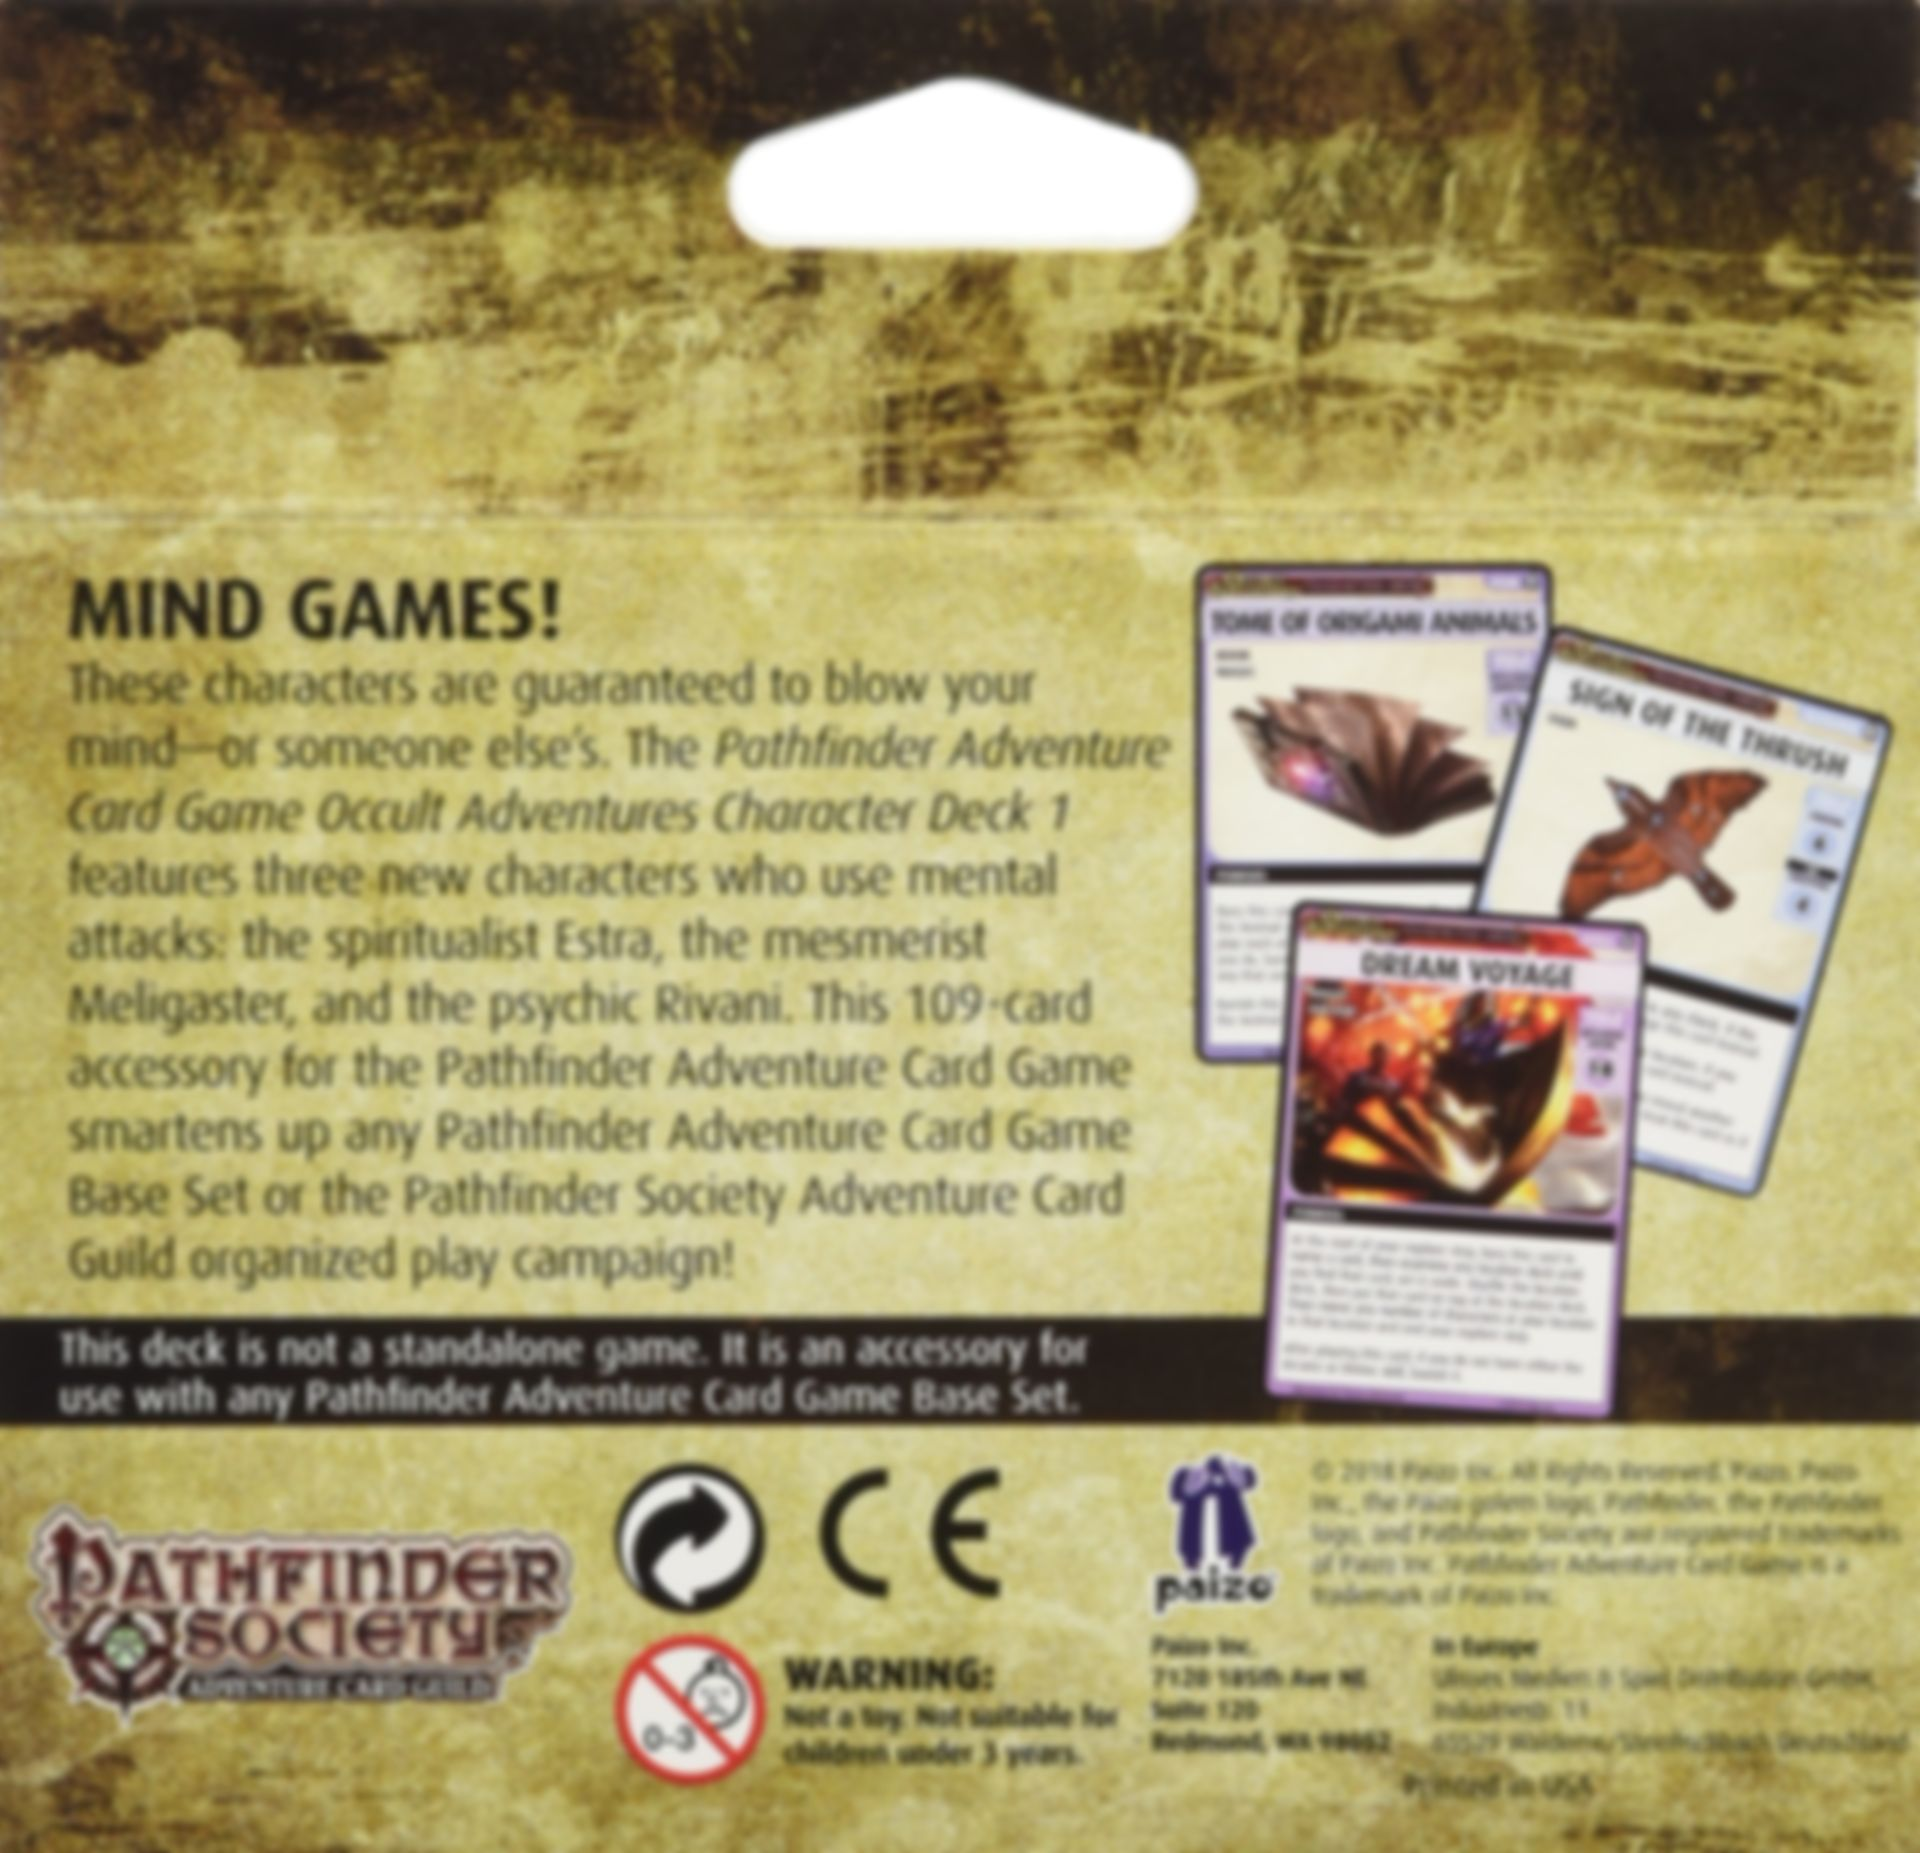 Pathfinder Adventure Card Game: Occult Adventures Character Deck 1 torna a scatola